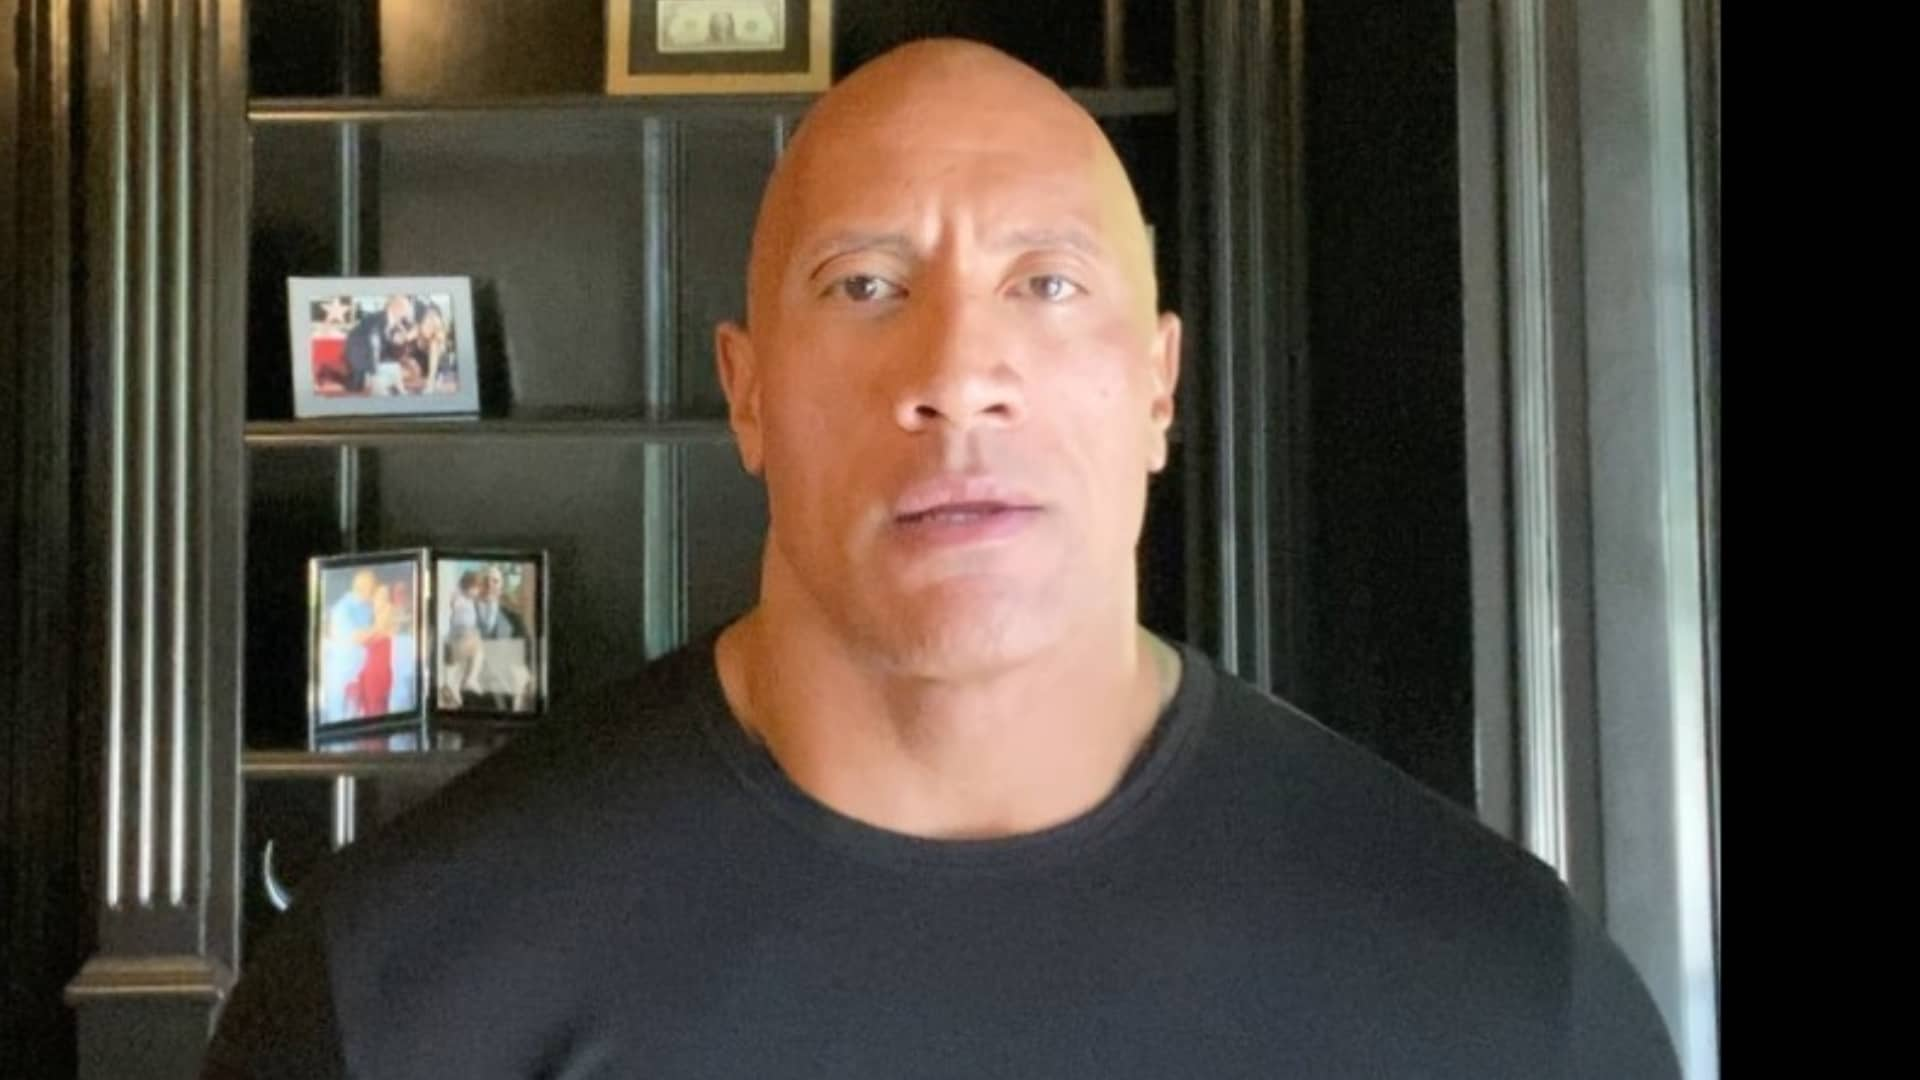 Dwayne 'The Rock' Johnson says he wants a leader who can 'normalize equality' - TheGrio